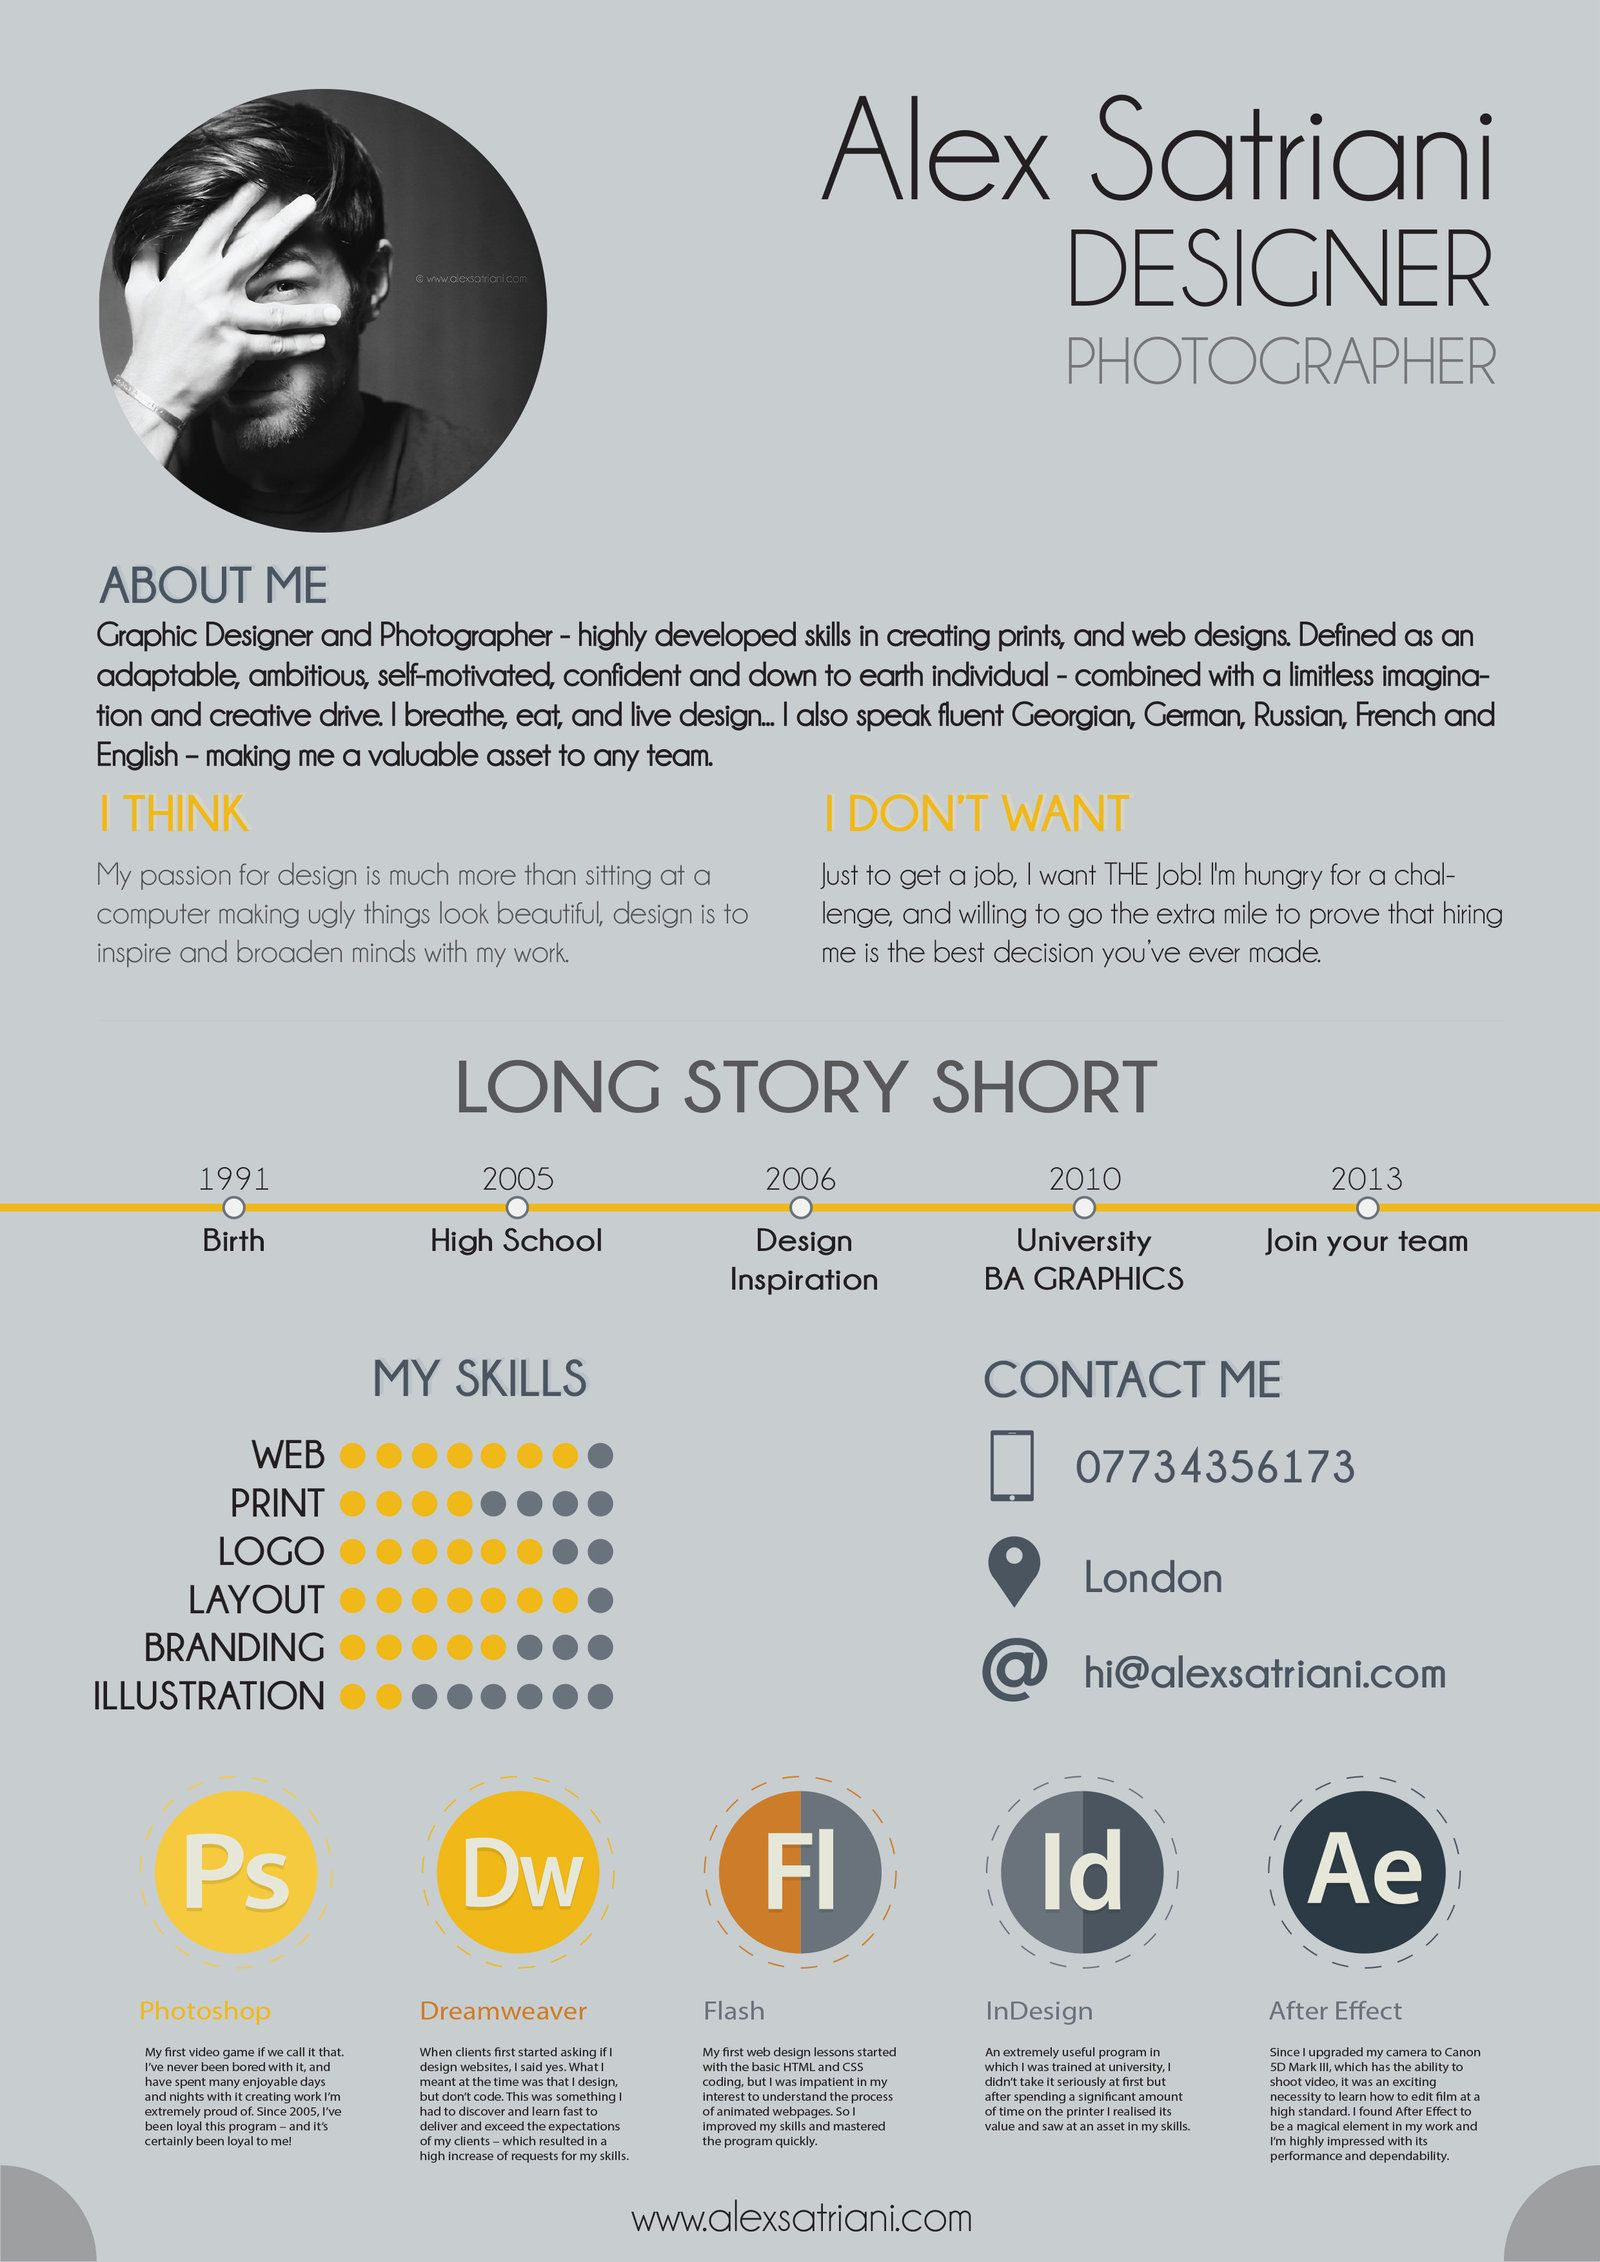 alex creative cv by alexsatriani.deviantart on @deviantart